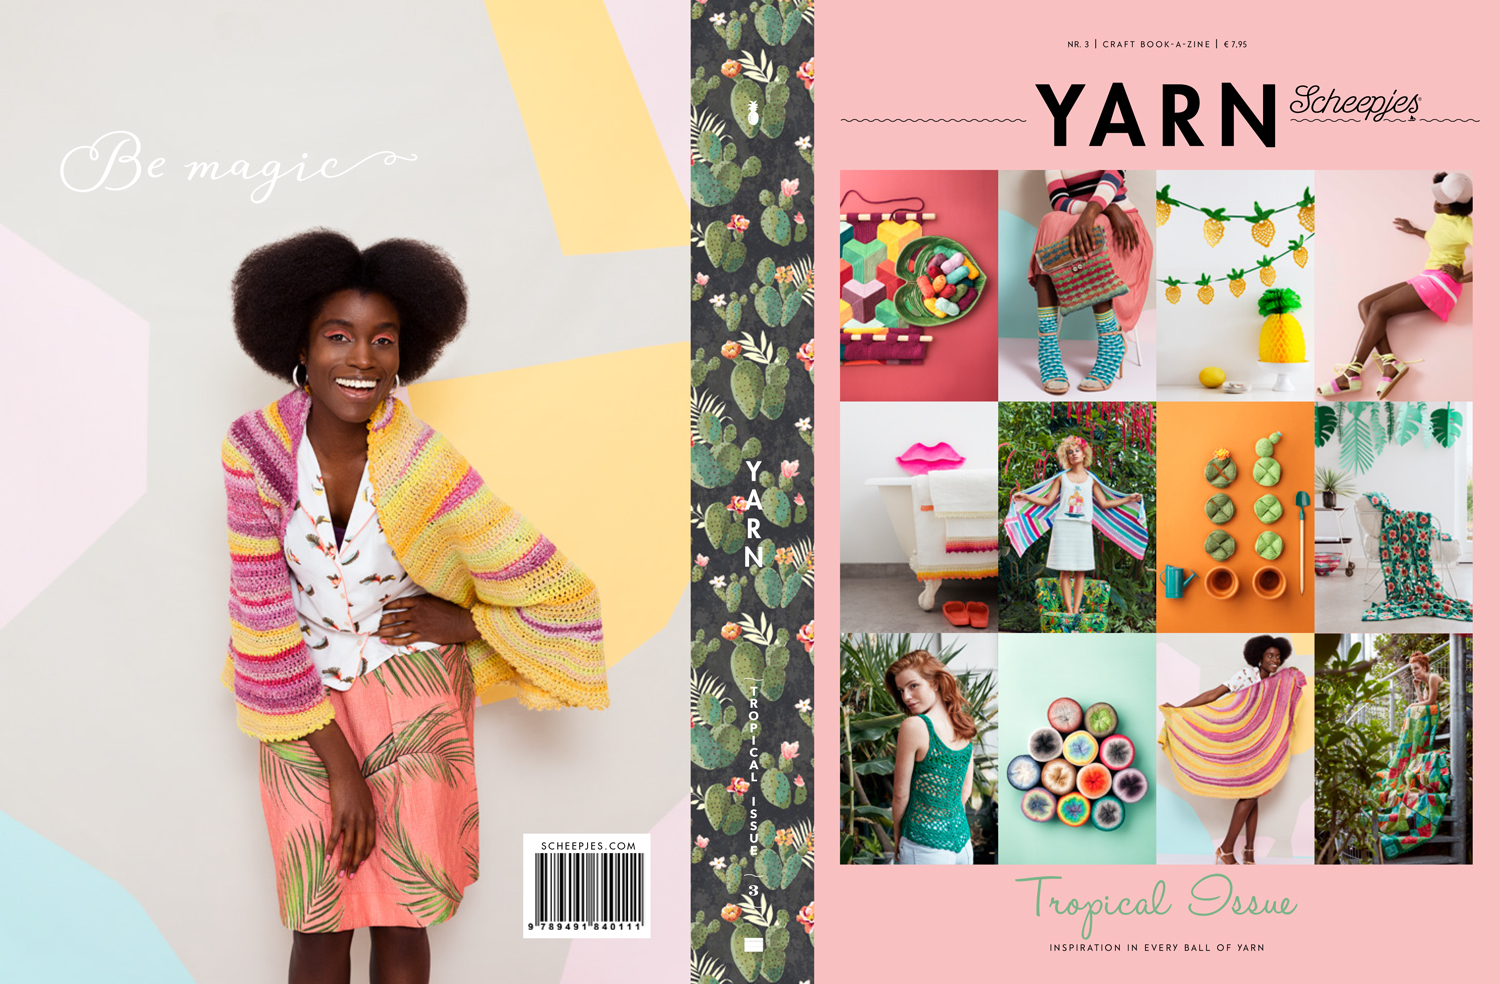 Image of Scheepjes Yarn Magasin - Tropical Issue